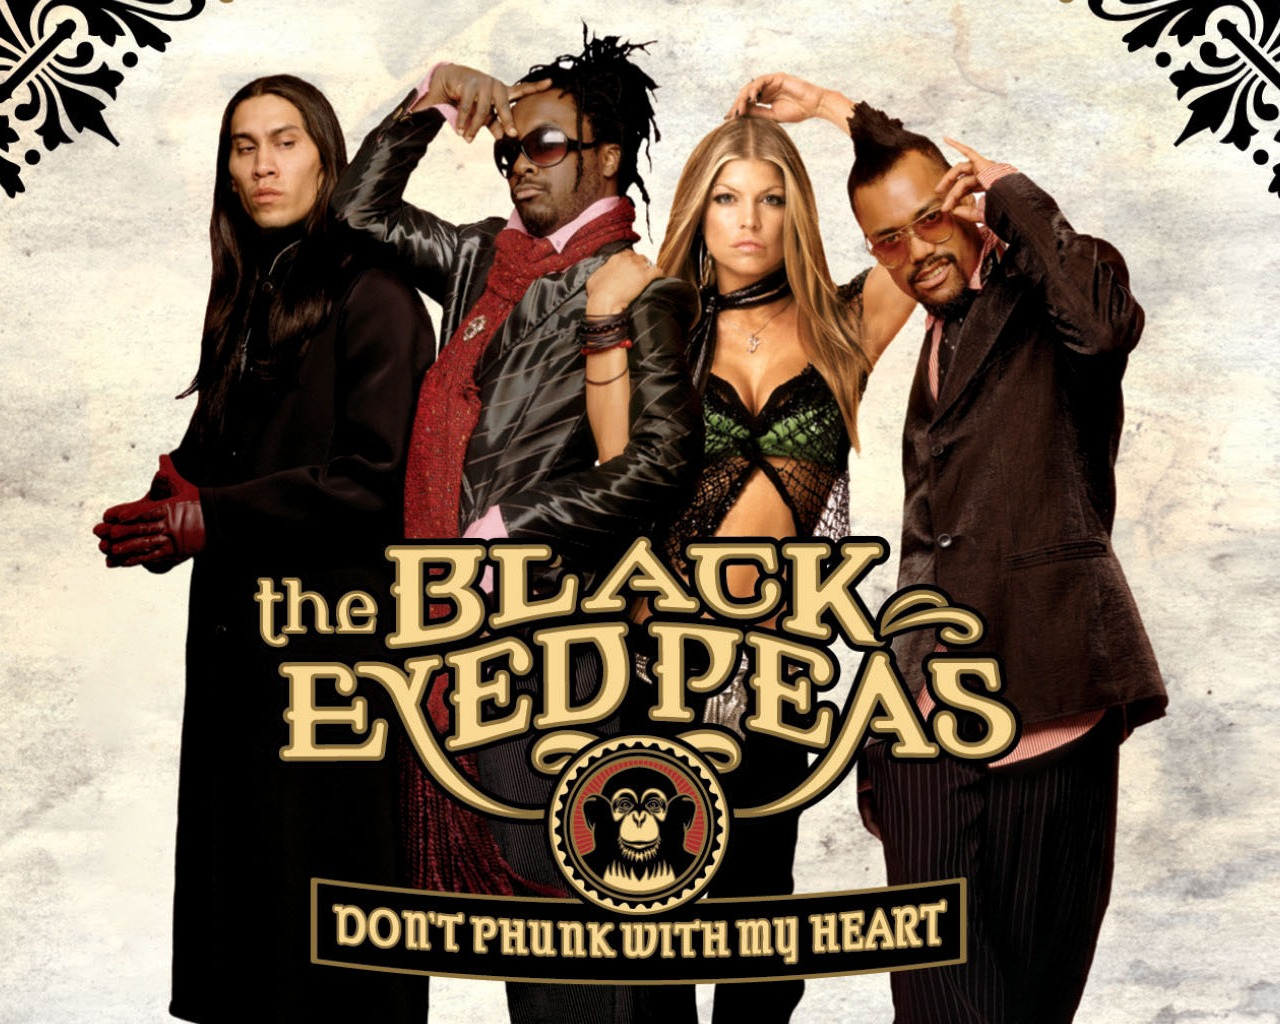 Black_Eyed_Peas_04_1280x1024.jpg